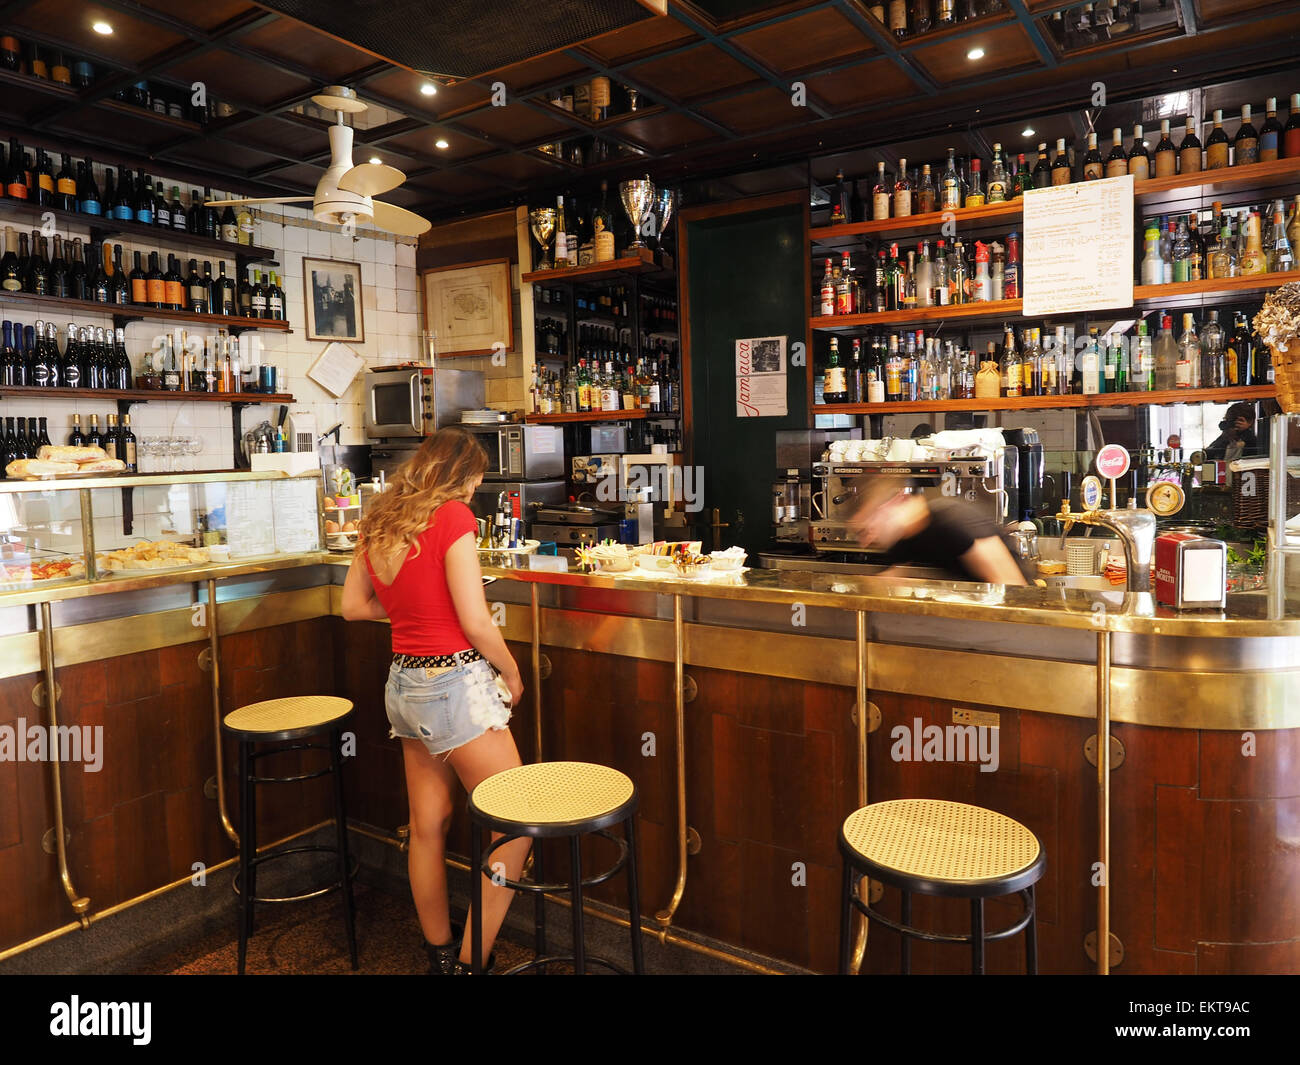 Jamaica cafe brera district milan lombardy italy for Brera district